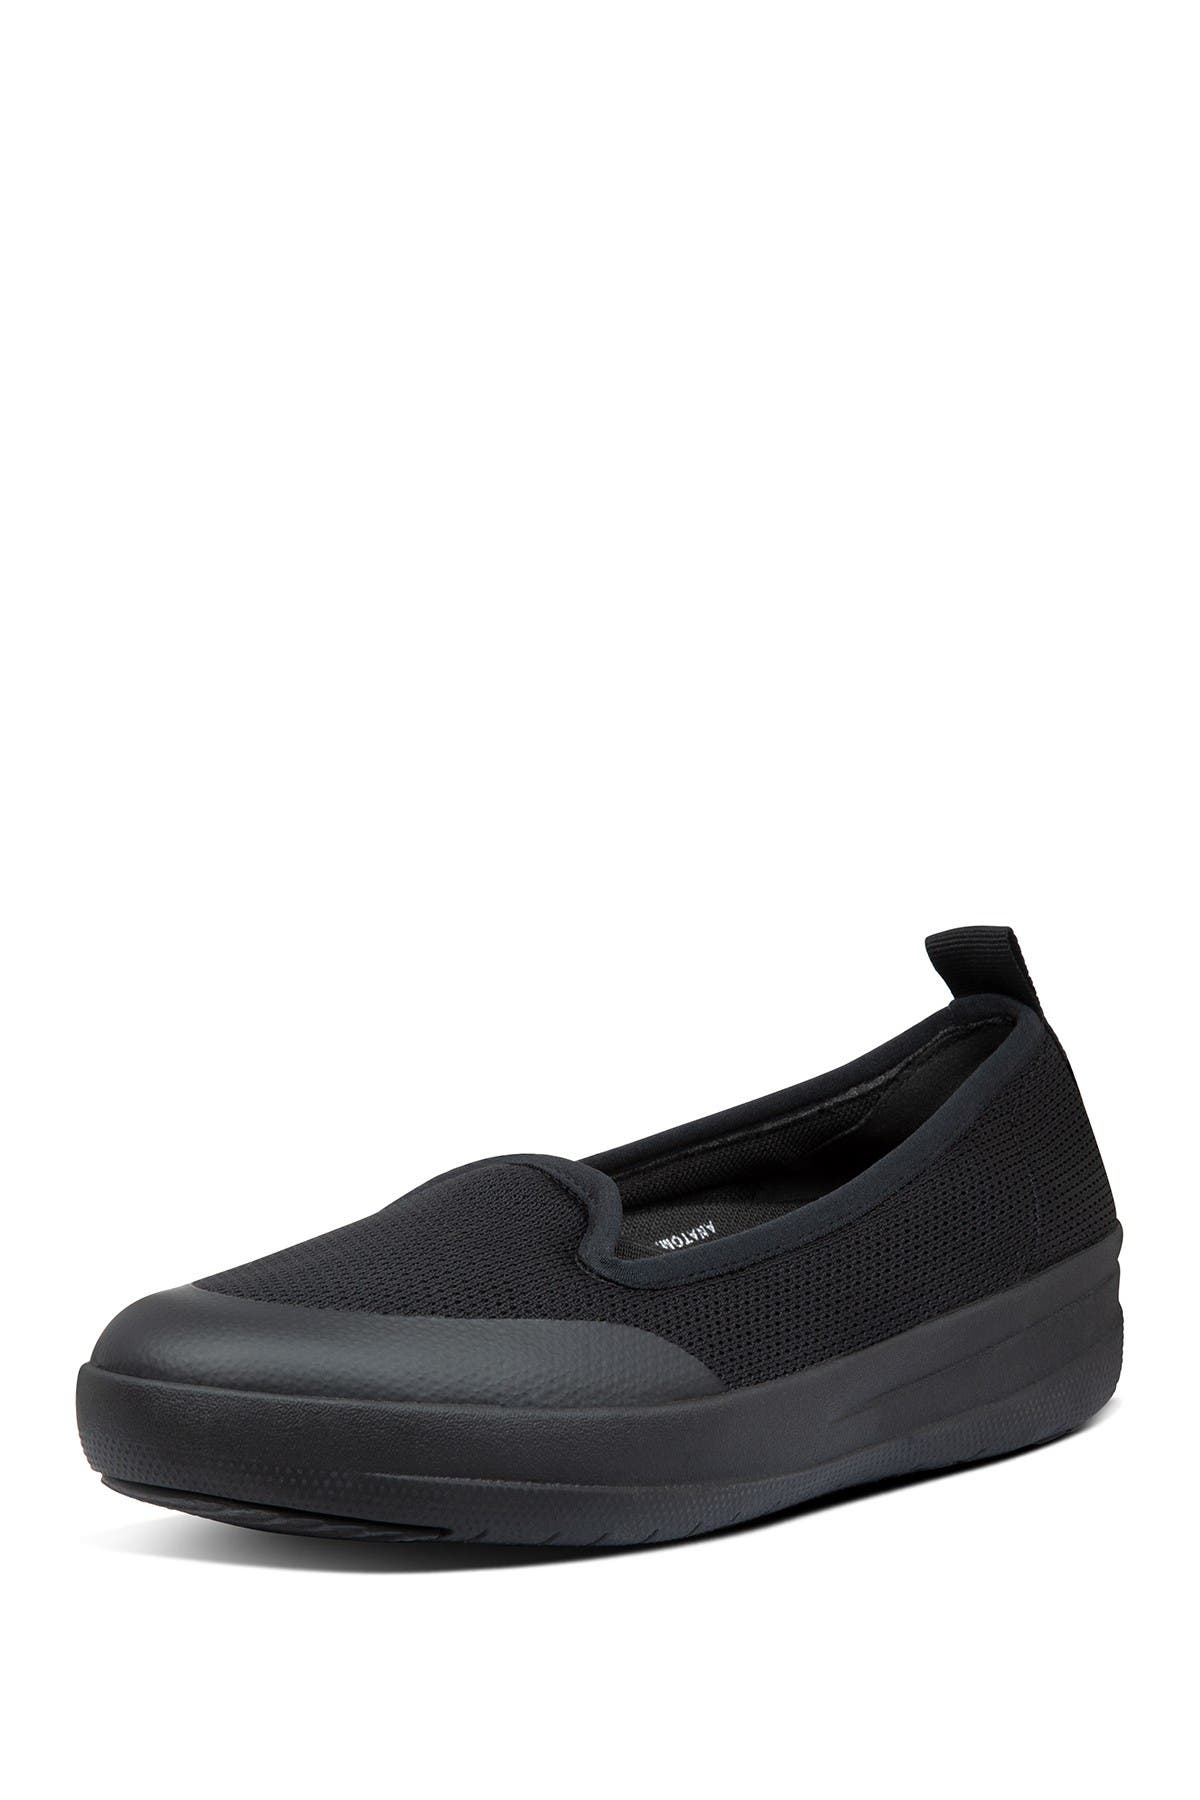 Image of Fitflop Volli Mesh Slip-On Flat